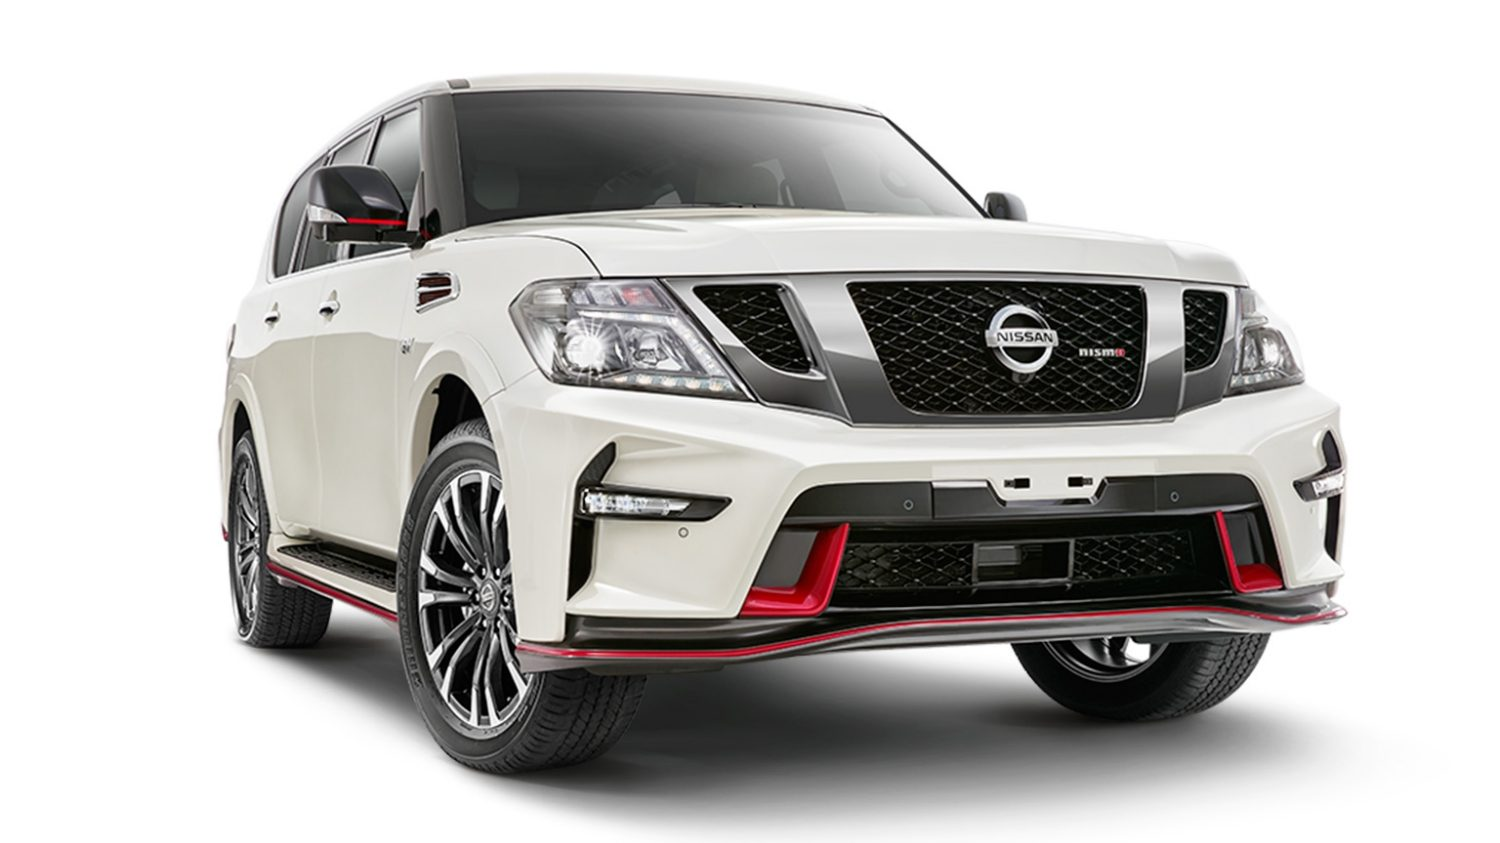 Nissan Patrol Versions Specifications